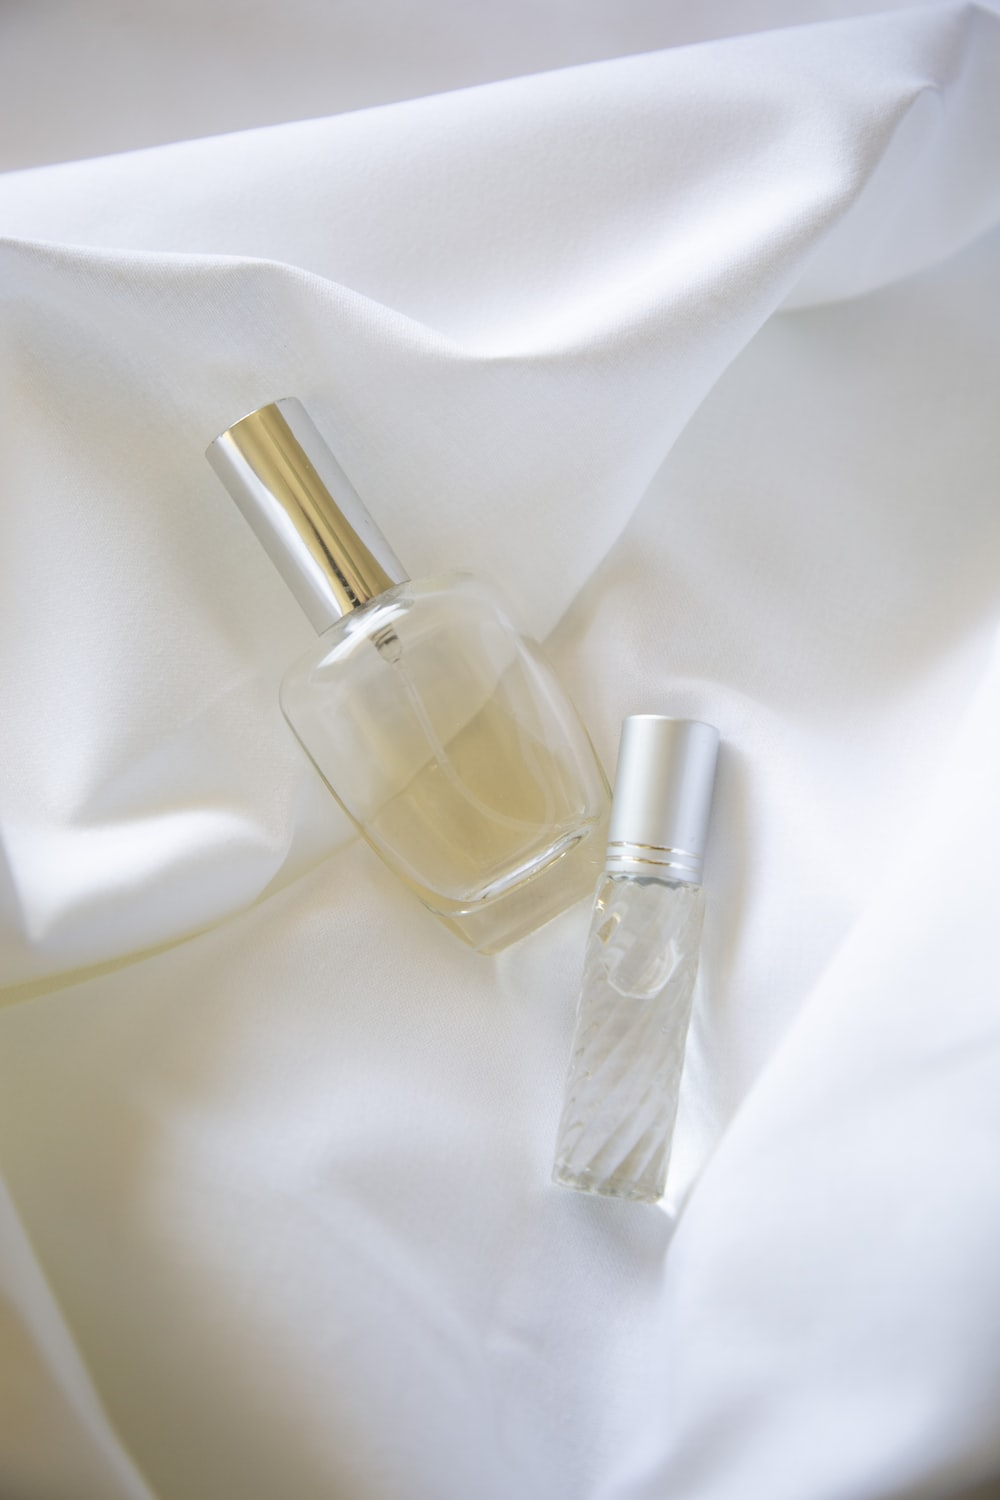 two bottles on white textile